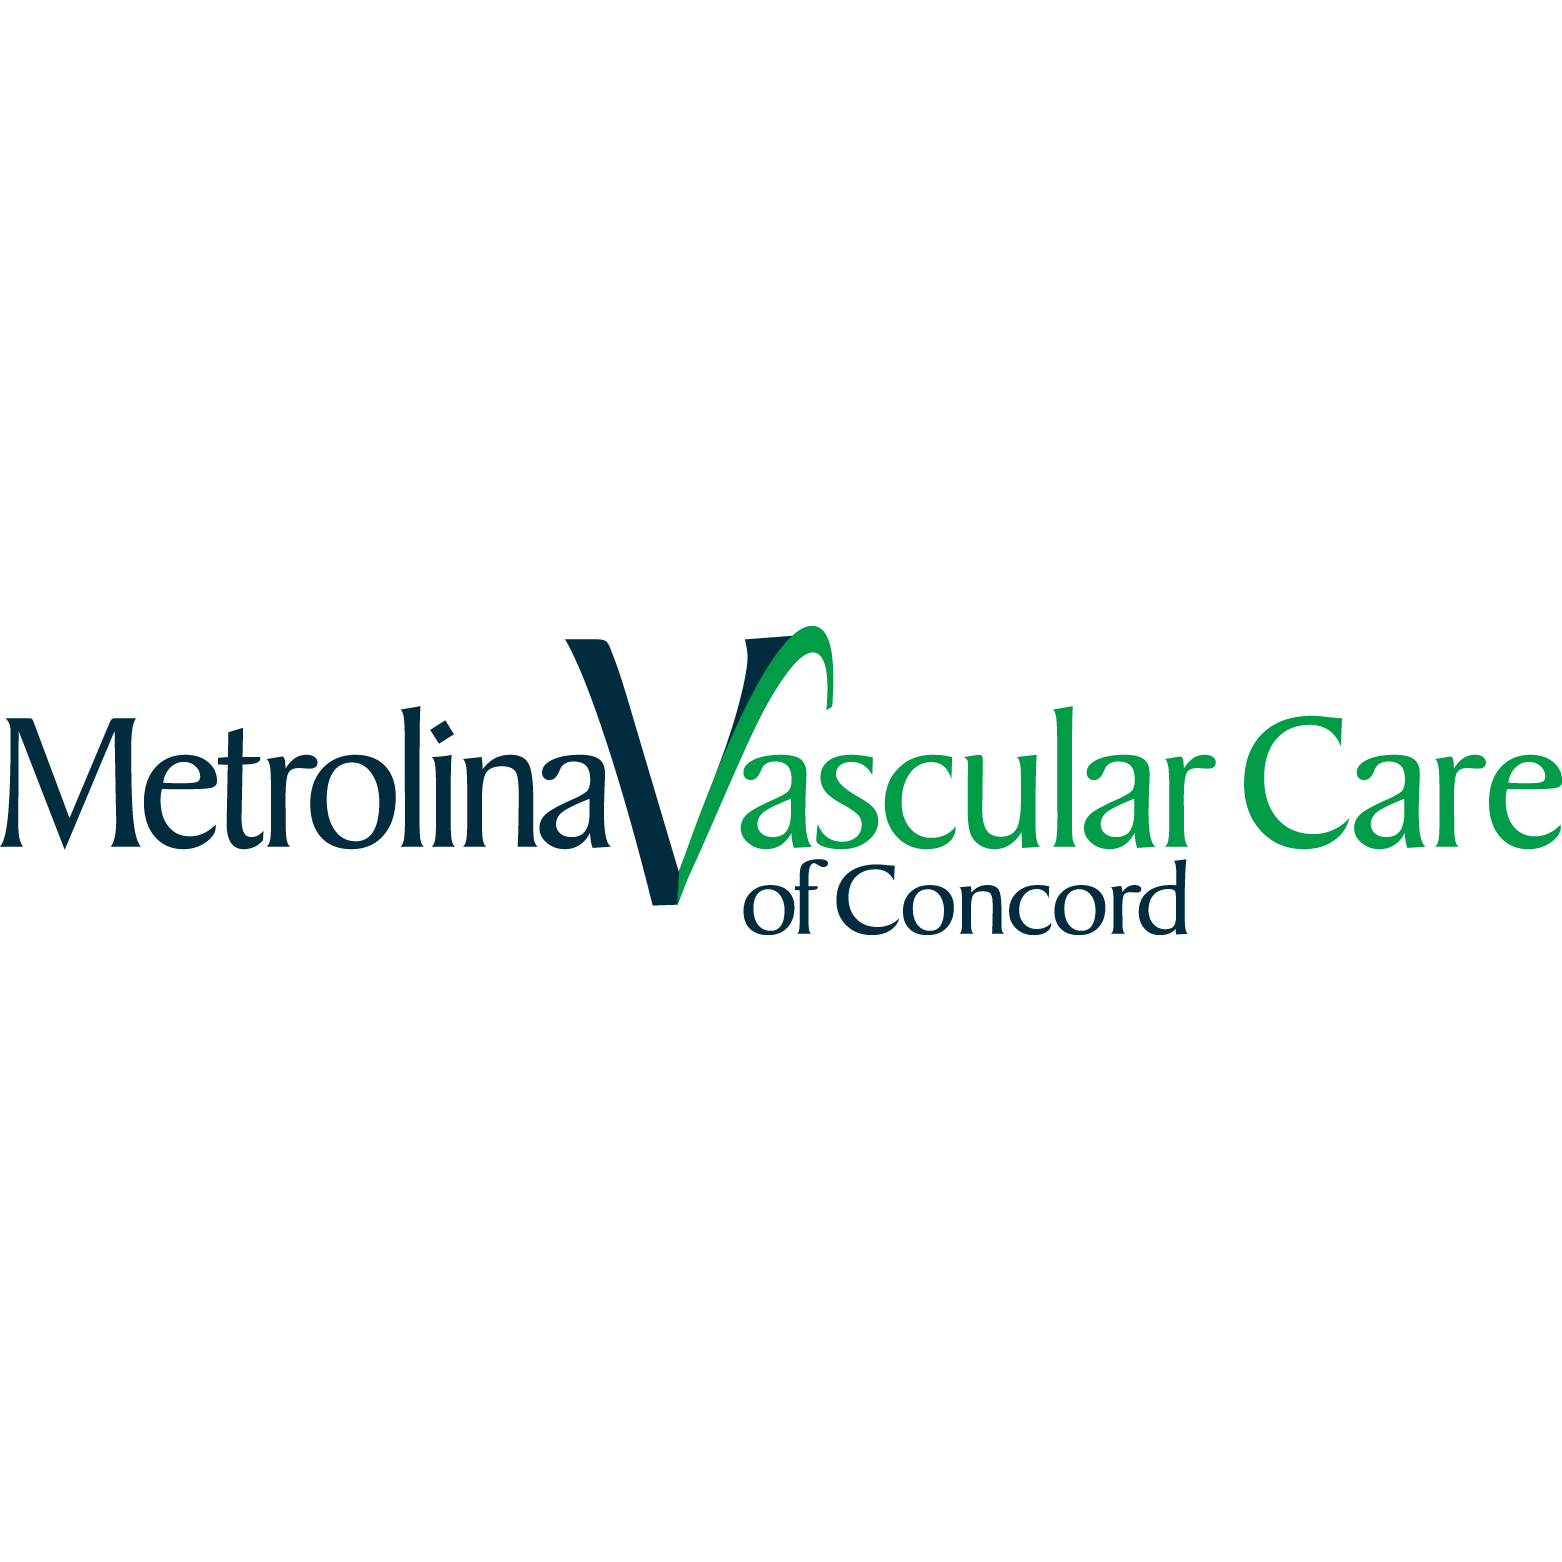 Metrolina Vascular Care of Concord